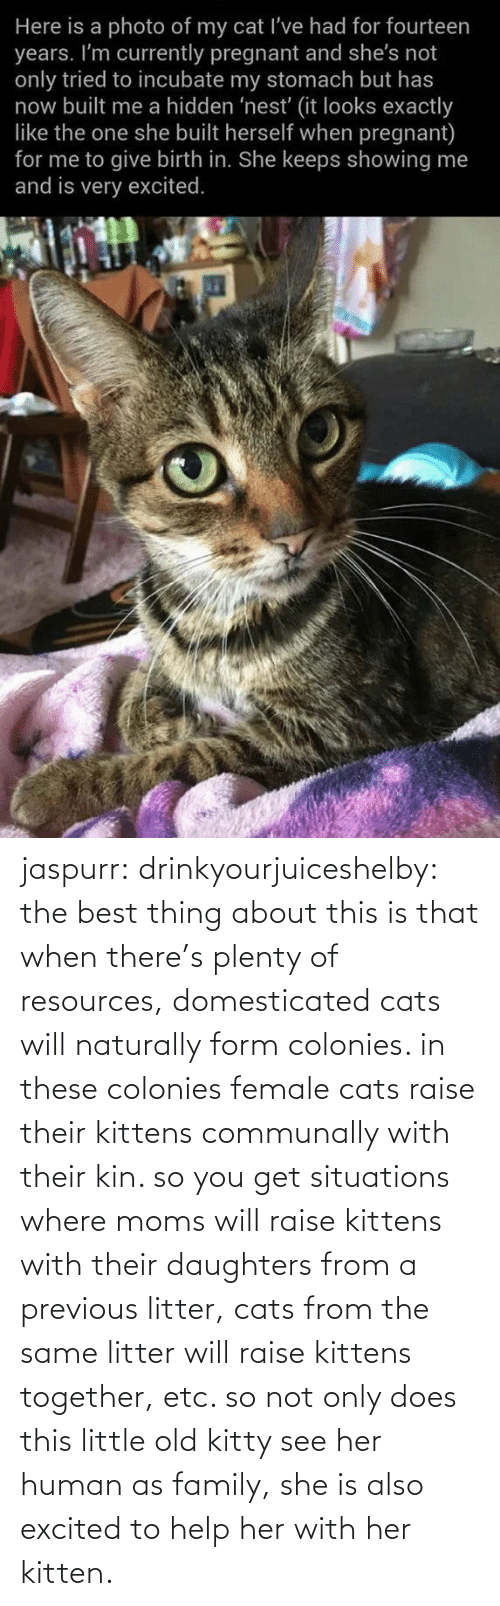 there: jaspurr:  drinkyourjuiceshelby:    the best thing about this is that when there's plenty of resources, domesticated cats will naturally form colonies. in these colonies female cats raise their kittens communally with their kin. so you get situations where moms will raise kittens with their daughters from a previous litter, cats from the same litter will raise kittens together, etc. so not only does this little old kitty see her human as family, she is also excited to help her with her kitten.